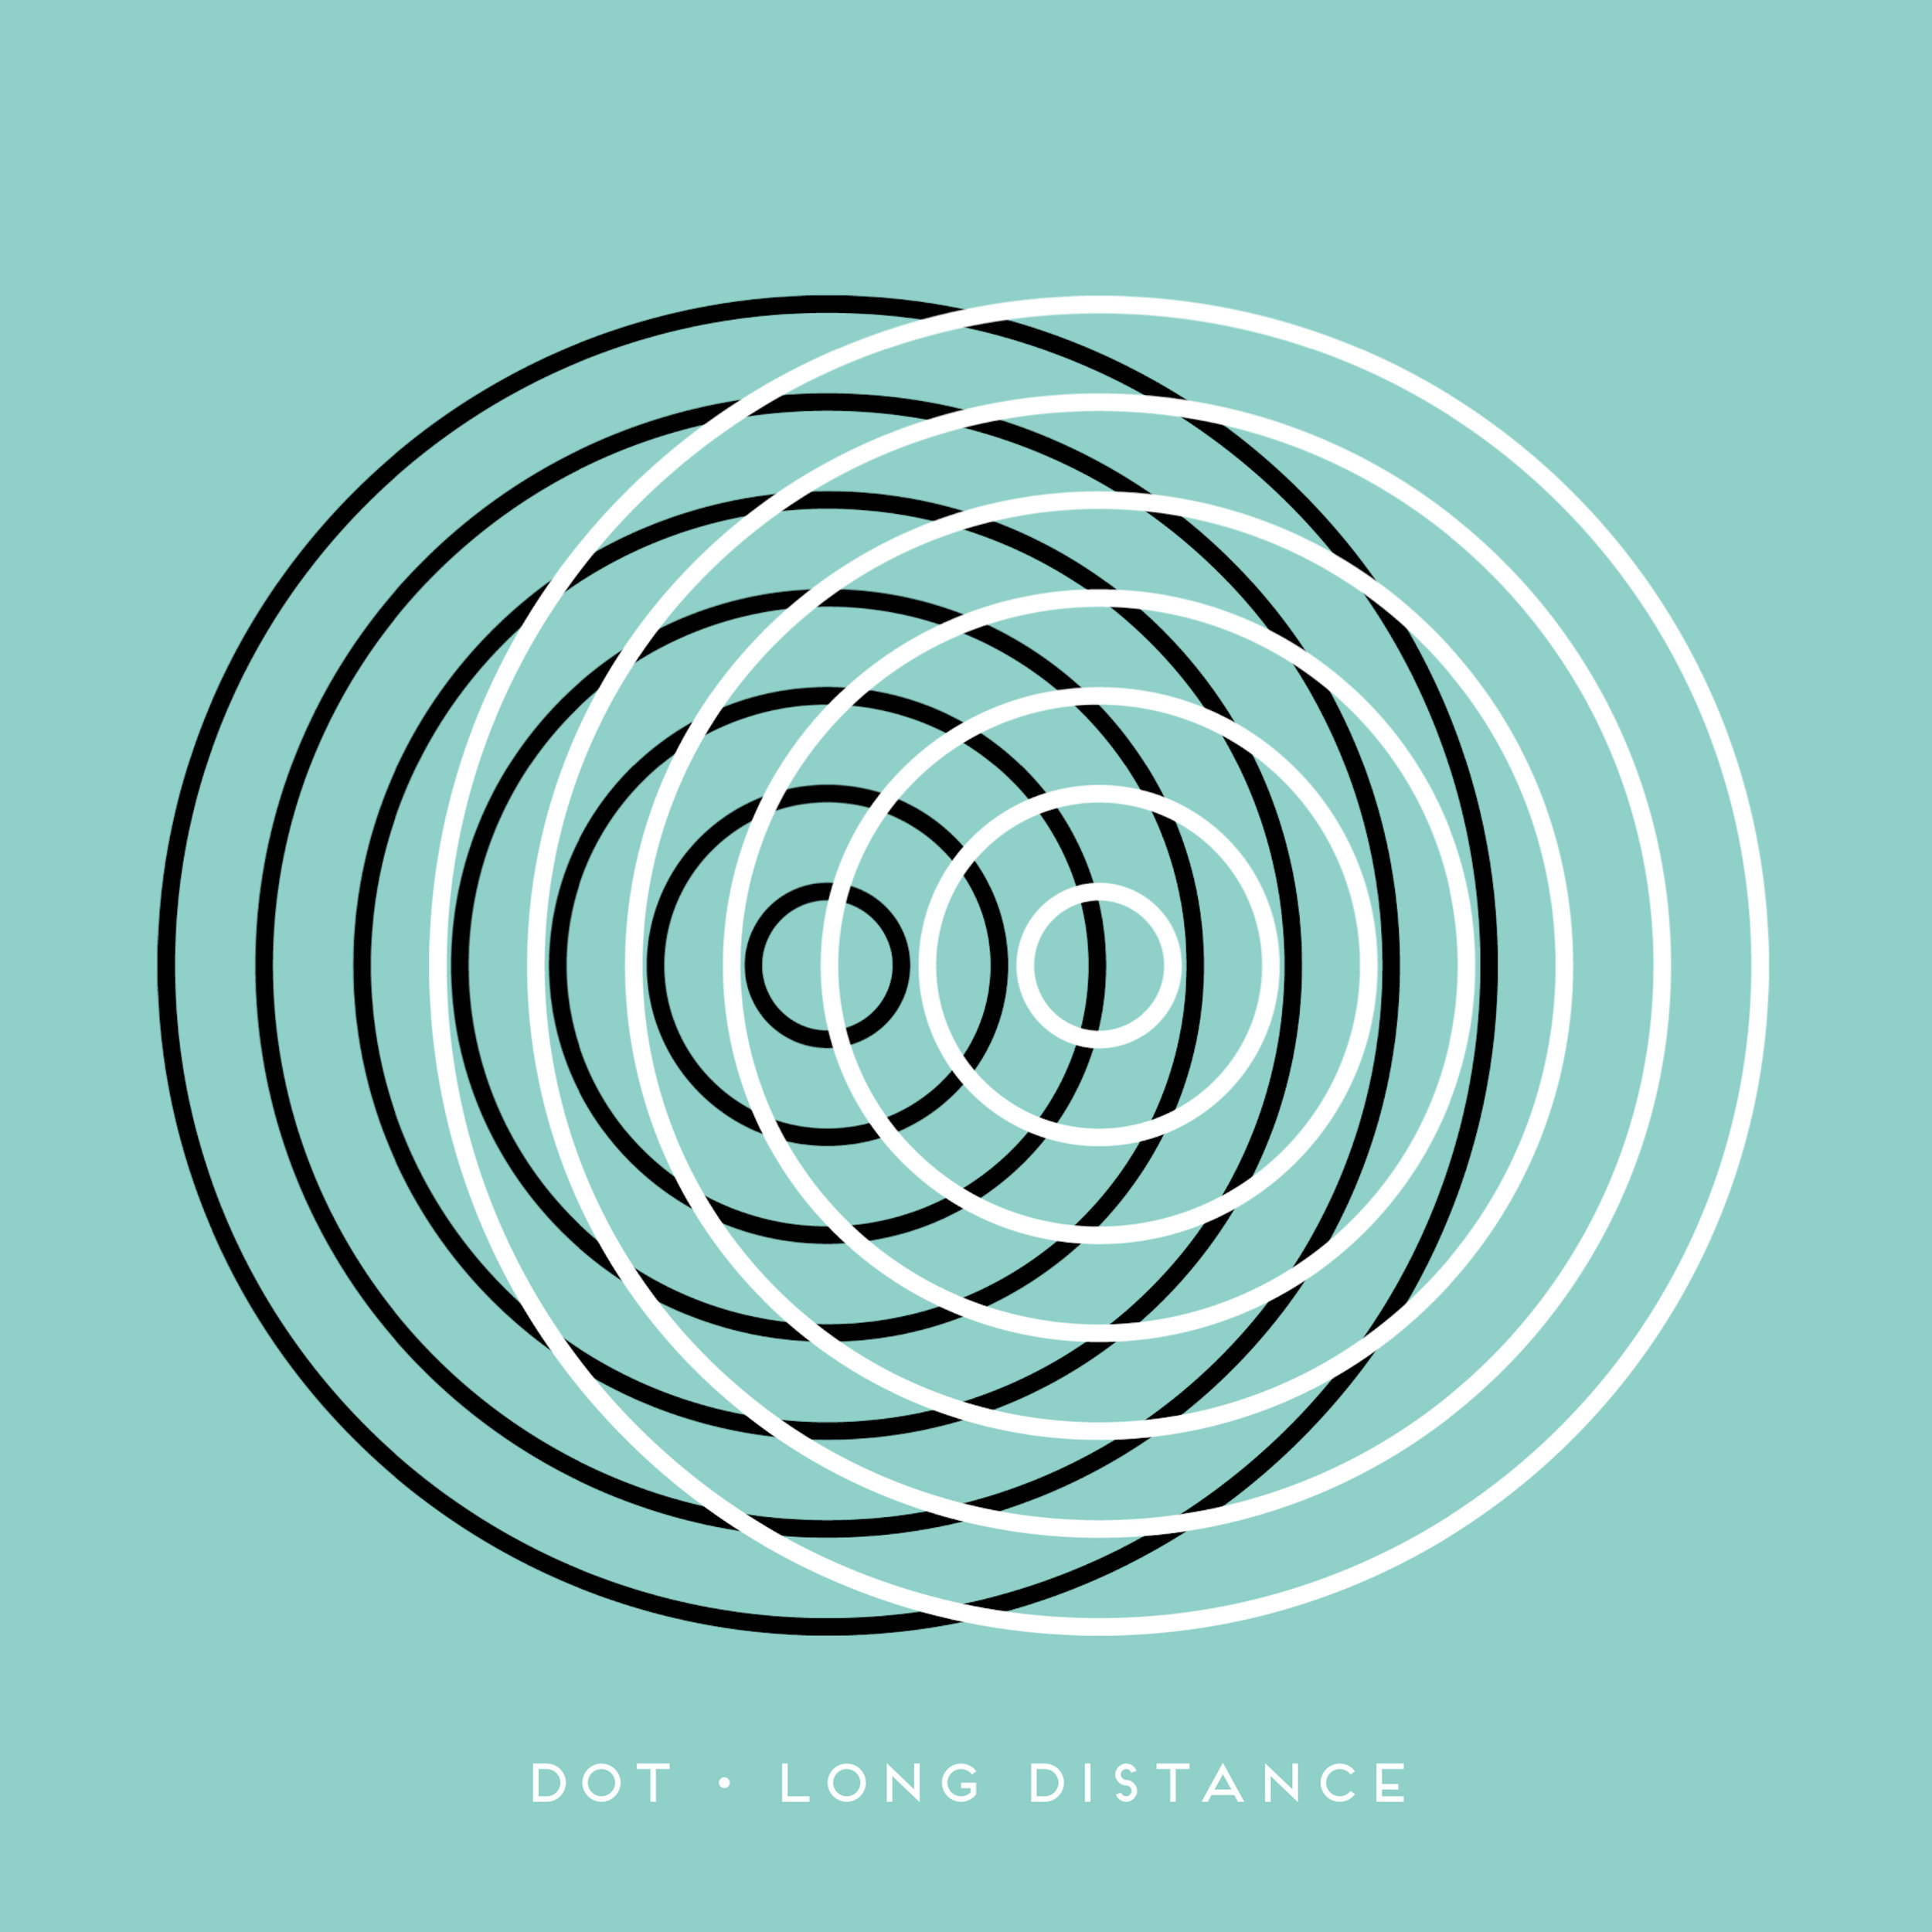 Dot - Long Distance ARTWORK.jpg